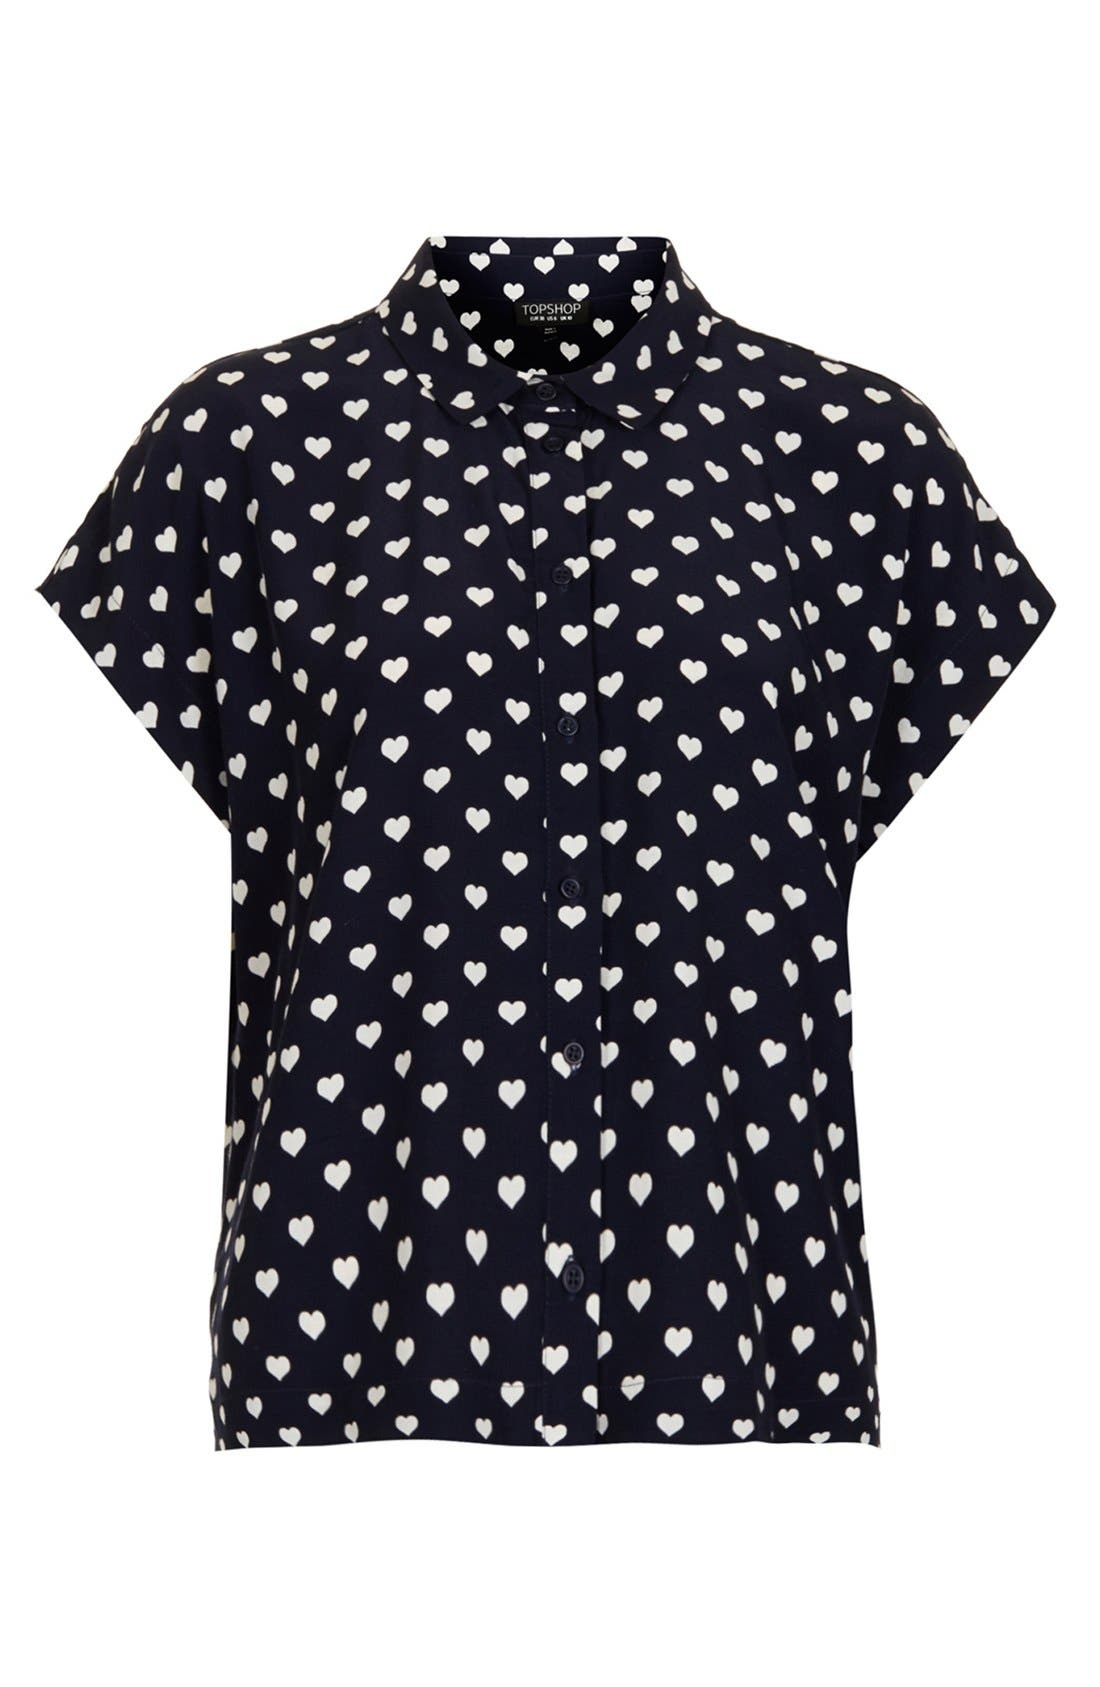 Alternate Image 3  - Topshop Heart Print Shirt